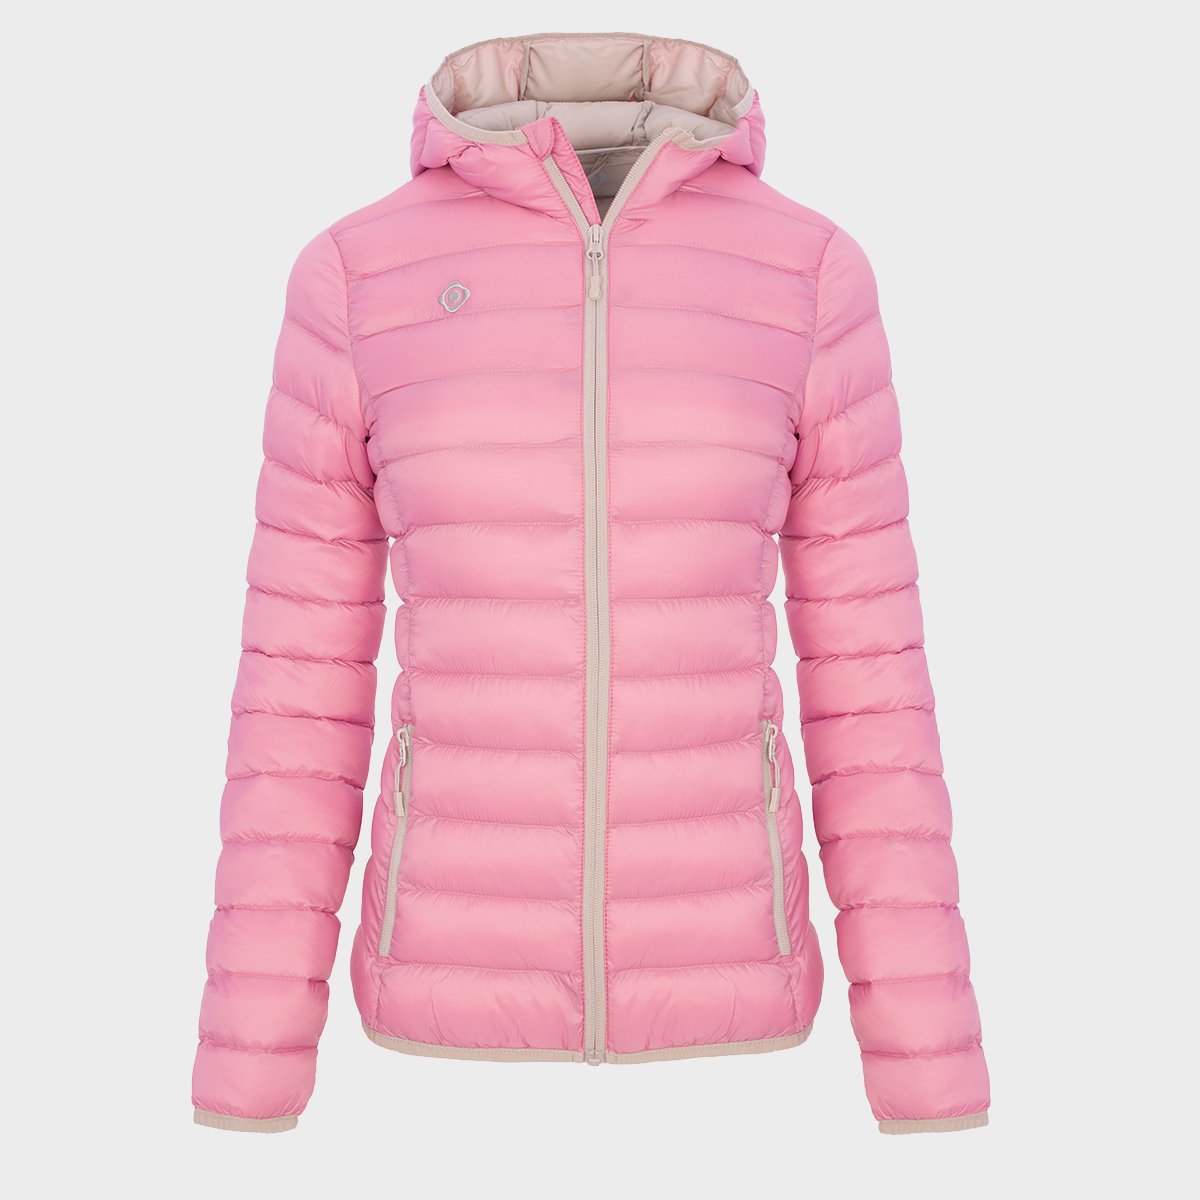 WOMAN'S AILAMA MOUNT-LOFT PADDED PINK